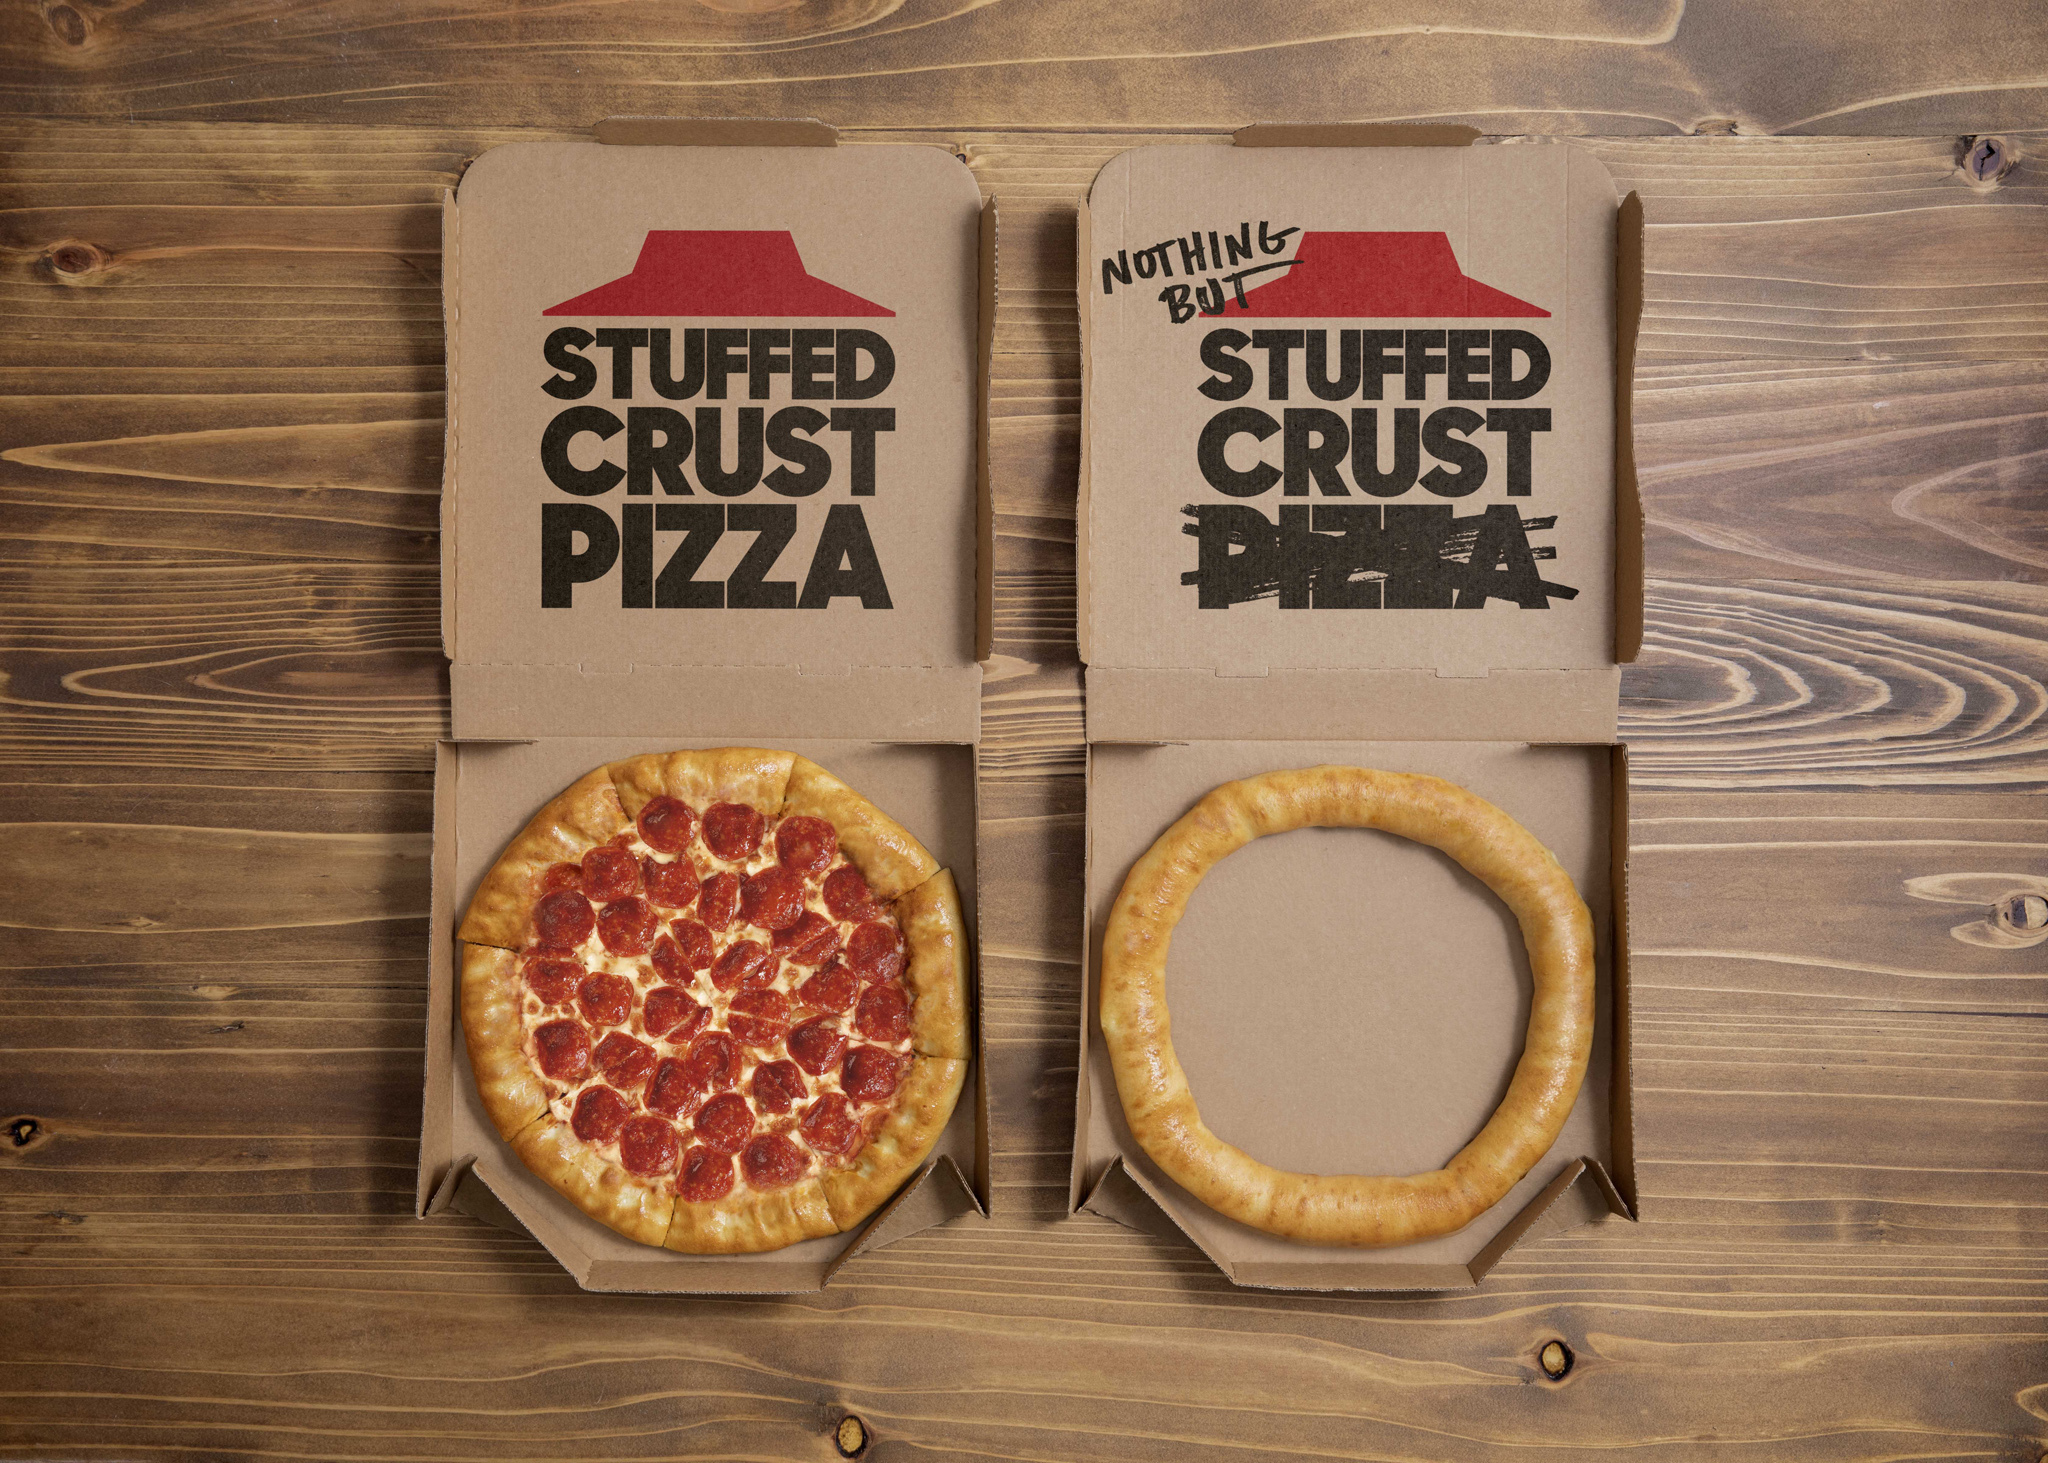 L.A. Pizza Huts are giving away stuffed-crust pizzas (without the pizza part)